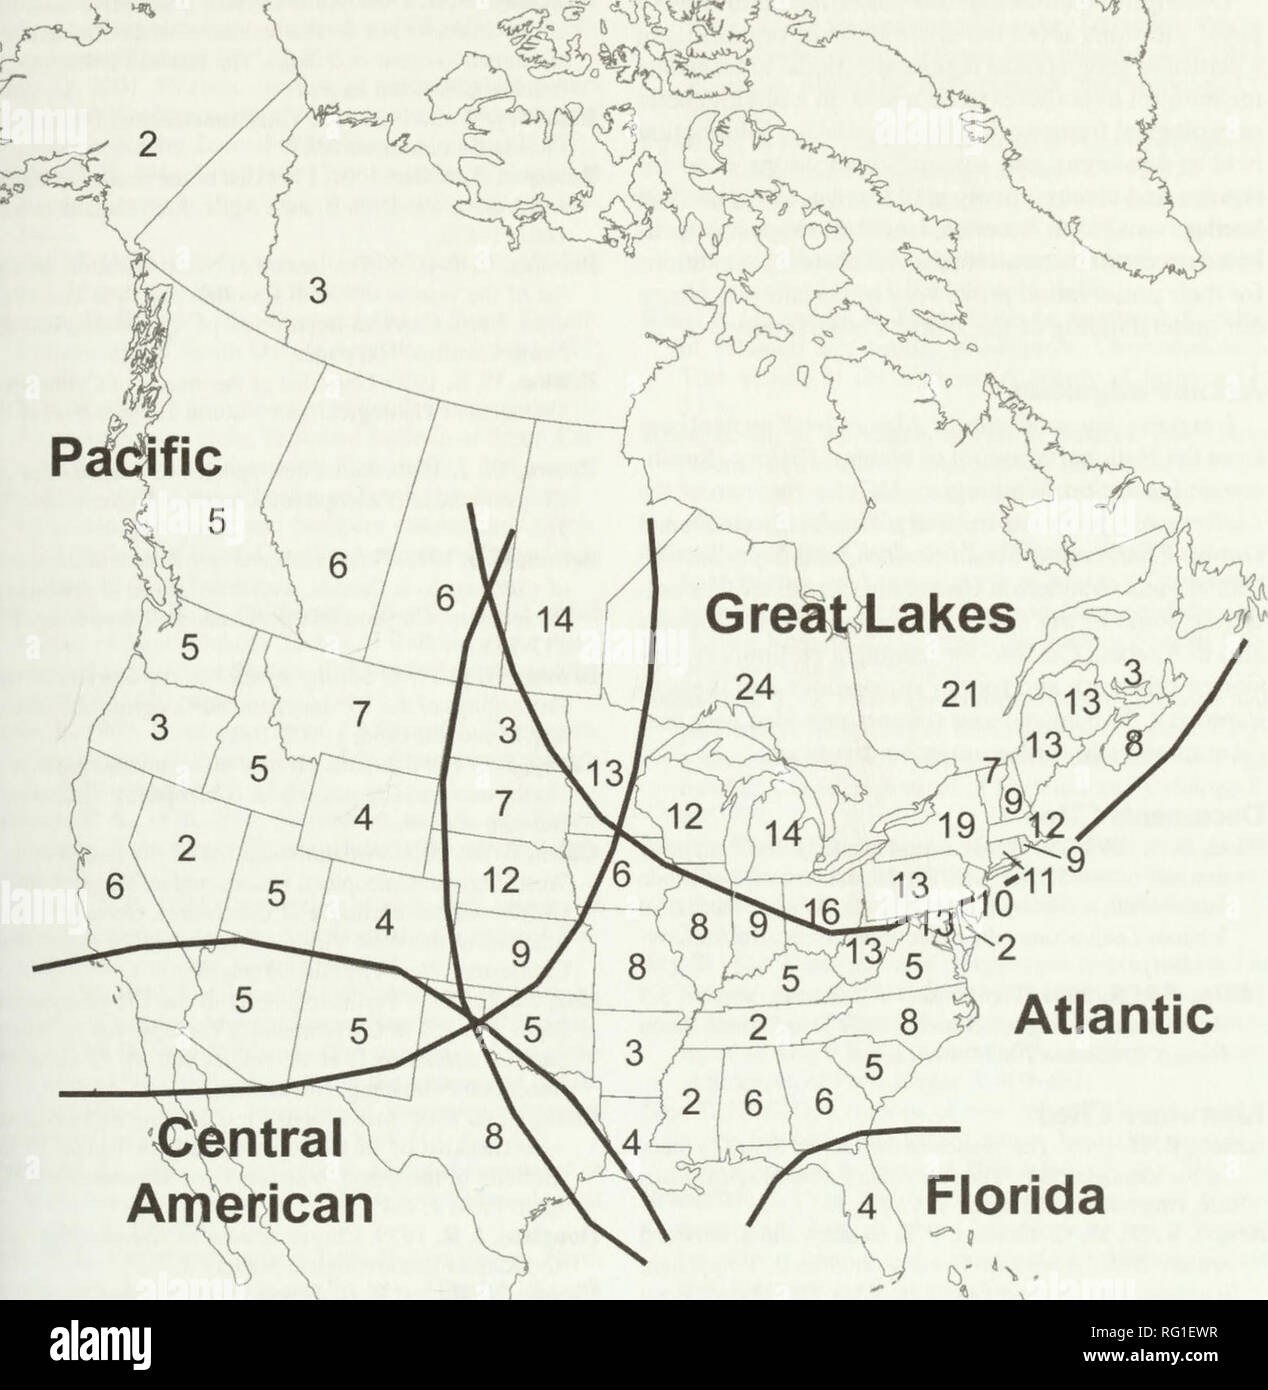 . The Canadian field-naturalist. Natural history; Sciences naturelles. 2005 Gomez-Zurita: New Records and Biogeography of Callicrapha 97. Atlantic itral American A Florida Figure 2. Calligrapha species numbers in North American provinces and states. Thick lines roughly demarcate faunistic groups in the genus according to their geographic distribution. Calligrapha stands out among leaf beetles because it includes several parthenogenetic species, otherwise very unusual among the Chrysomelidae (Brown 1945; Robertson 1966; Cox 1996; Gomez-Zurita et al. 2004). It is noteworthy that all asexual spec - Stock Image